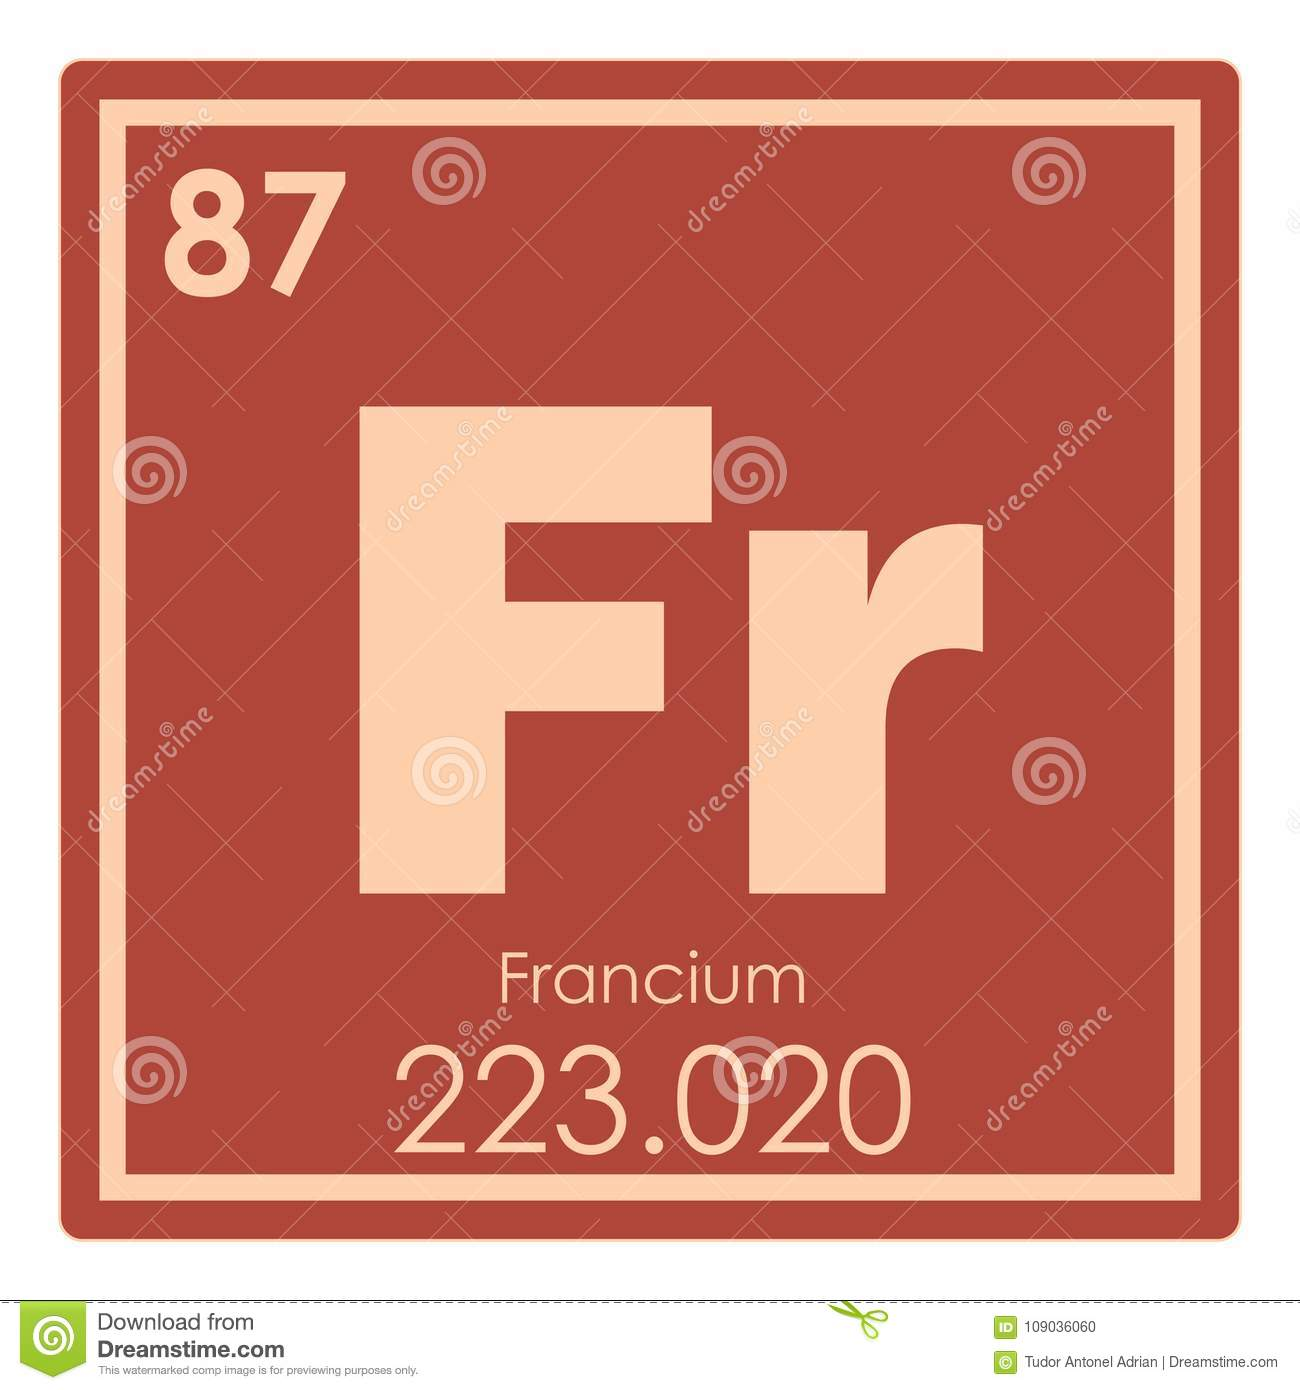 Francium Chemical Element Stock Illustration Illustration Of